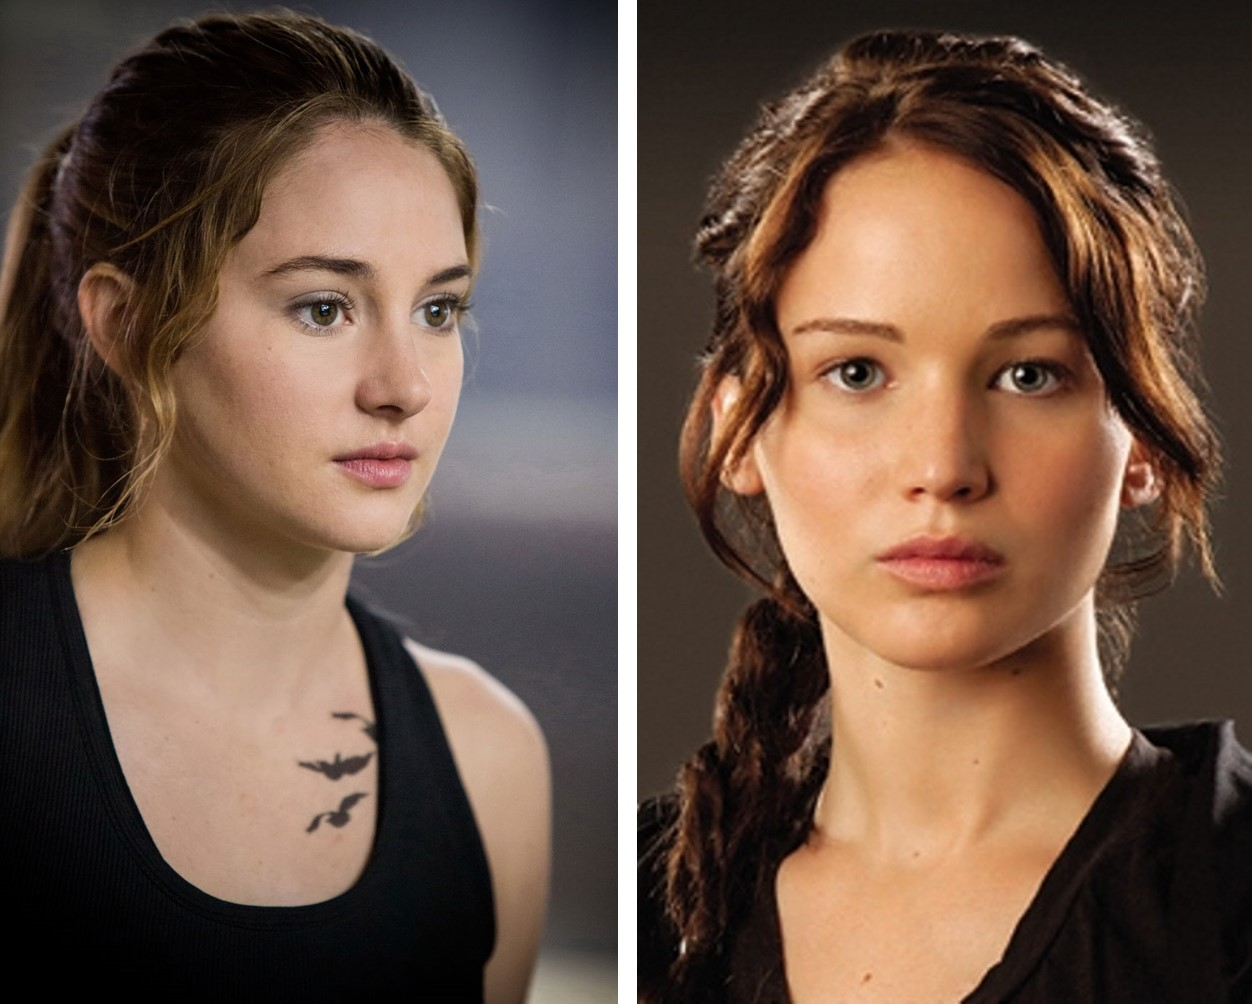 DIVERGENTE HUNGER GAMES - Tris Katniss - Shailene Woodley Jennfier Lawrence - Go with the Blog